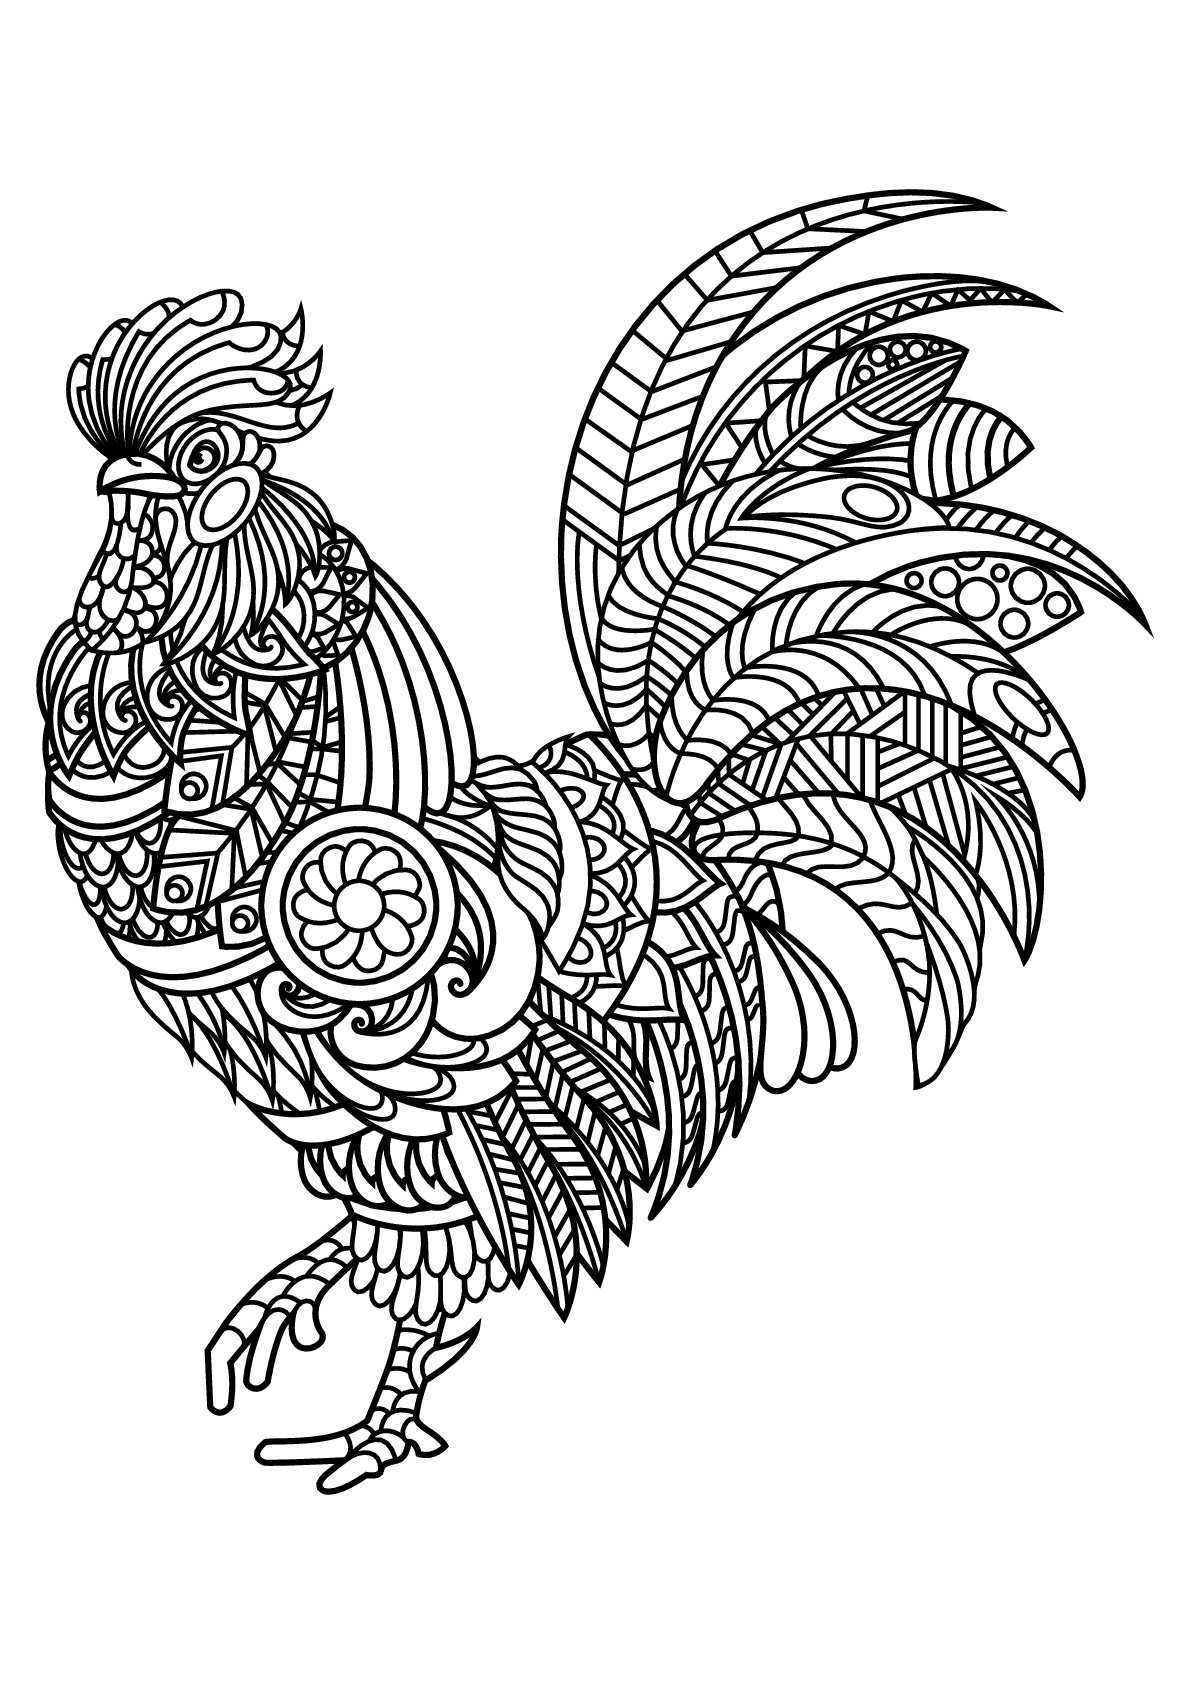 Cock, with complex and beautiful patterns